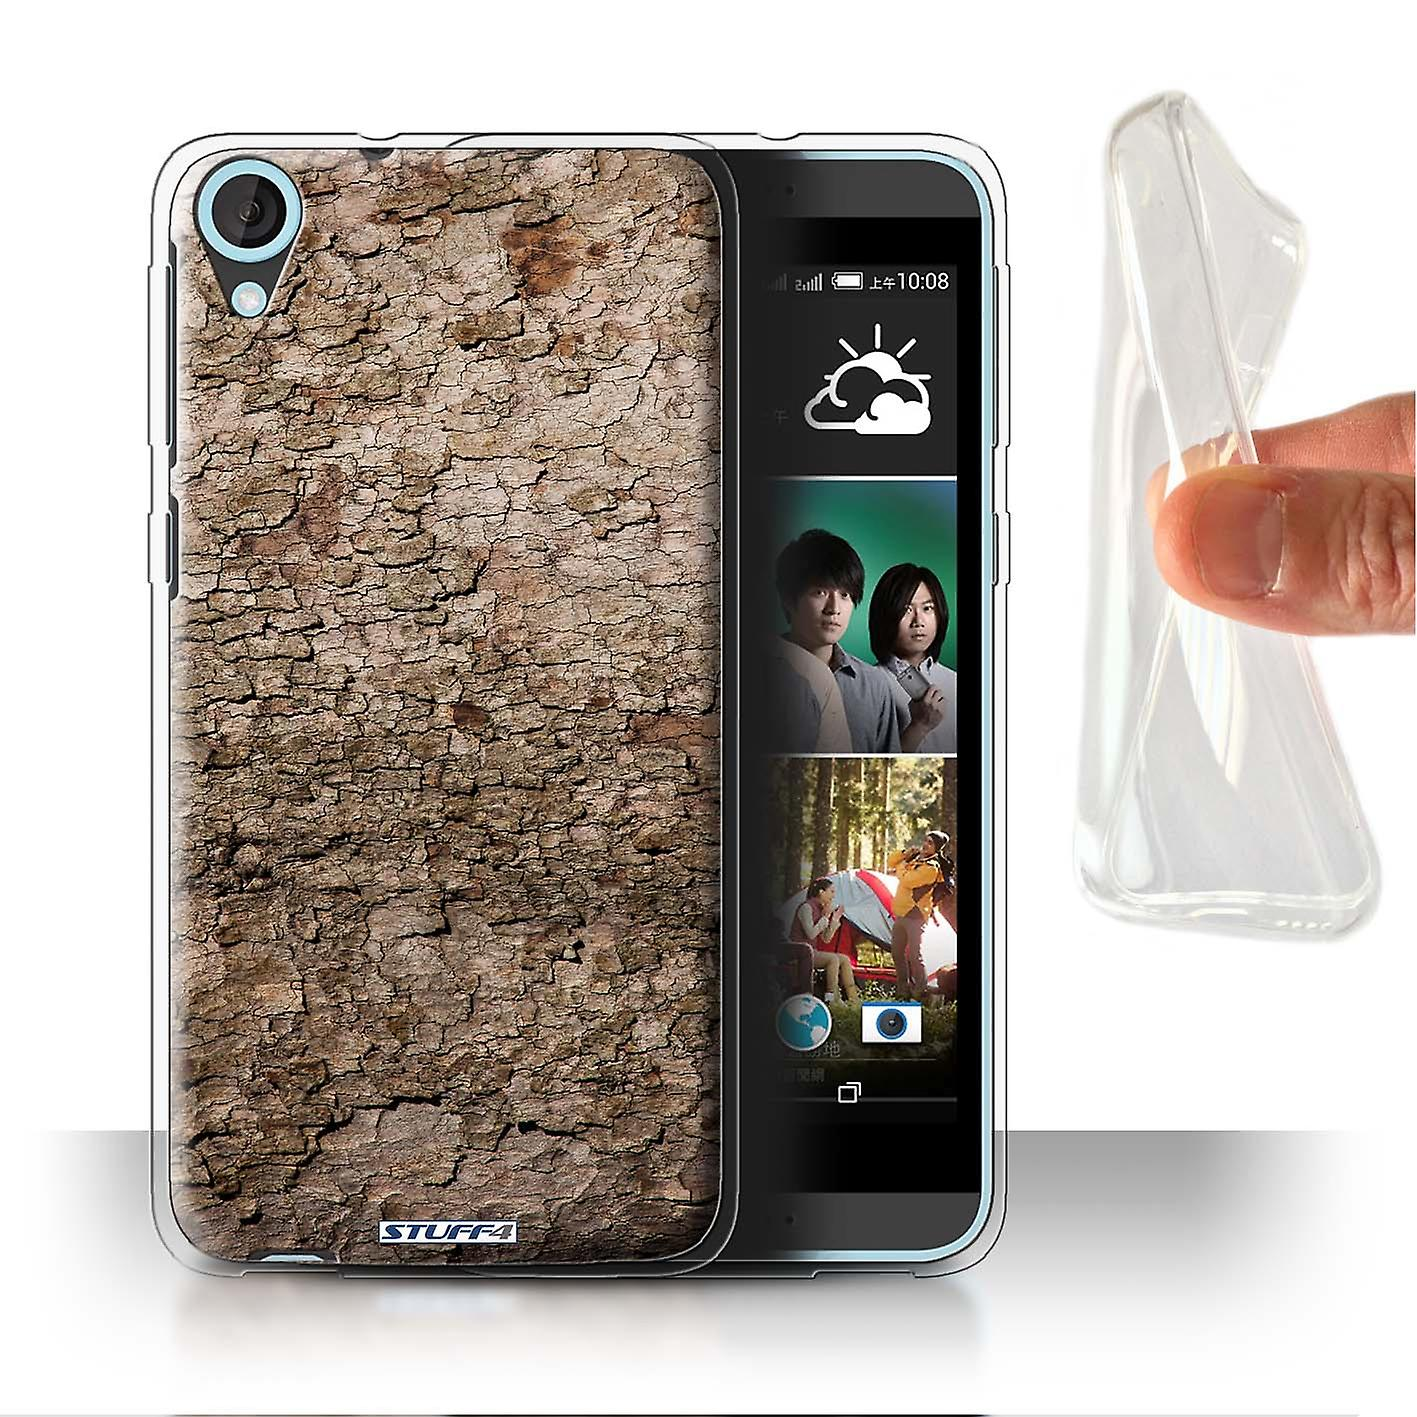 STUFF4 Gel/TPU Case/Cover for HTC Desire 820s Dual/Cracked/Tree Bark